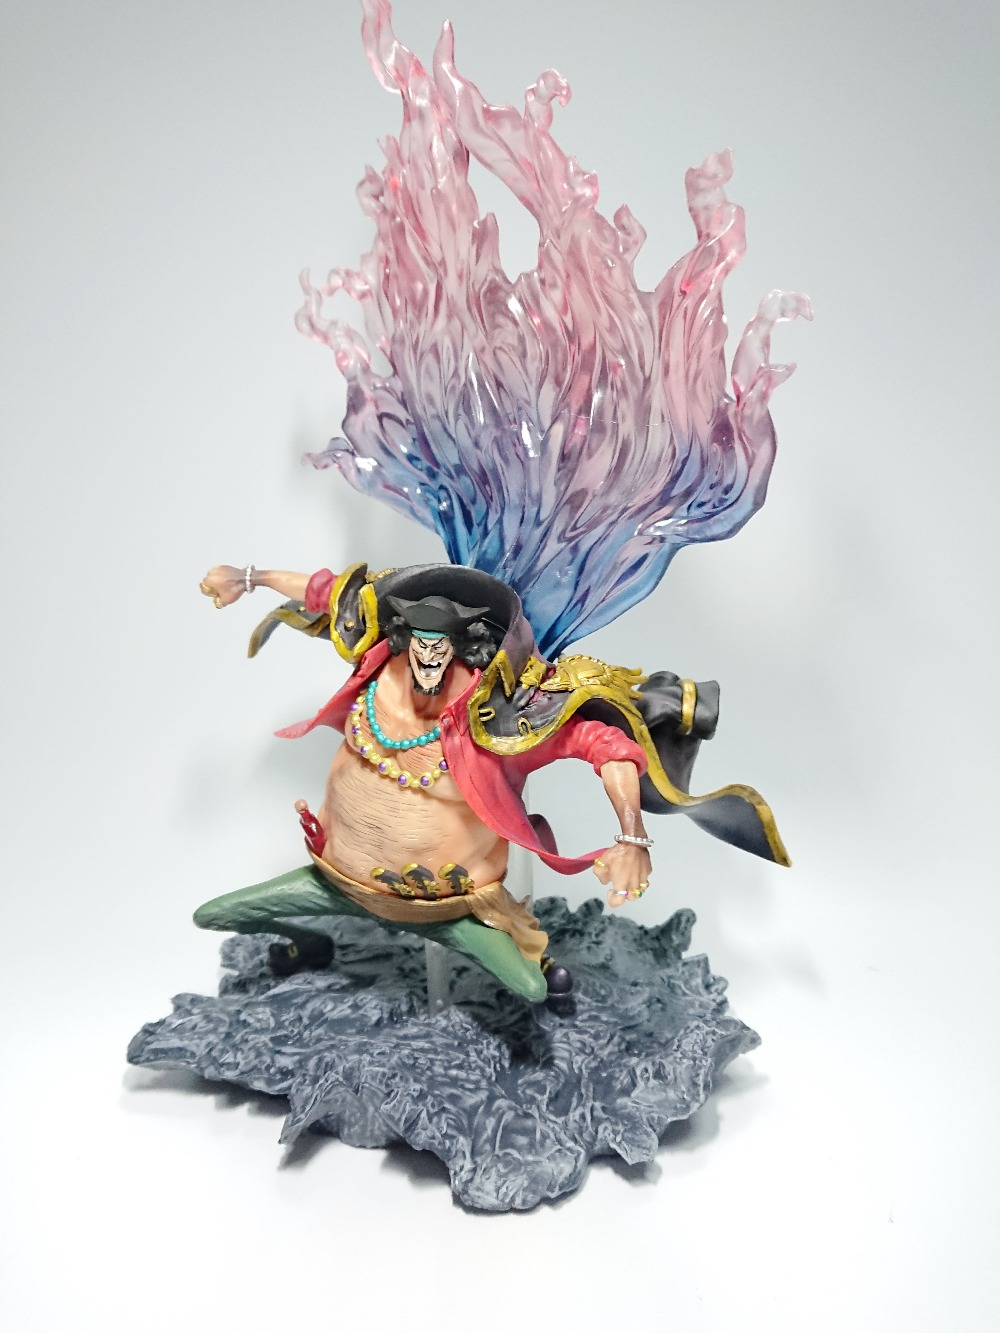 One Piece Marshall POP SIZE Figure Marshall D Teach Monkey D Luffy Portgas D Ace PVC 25 Action Figure Toy Collection Model Gift new hot 12cm one piece boa hancock monkey d luffy modelling action figure toys collection doll christmas gift with box